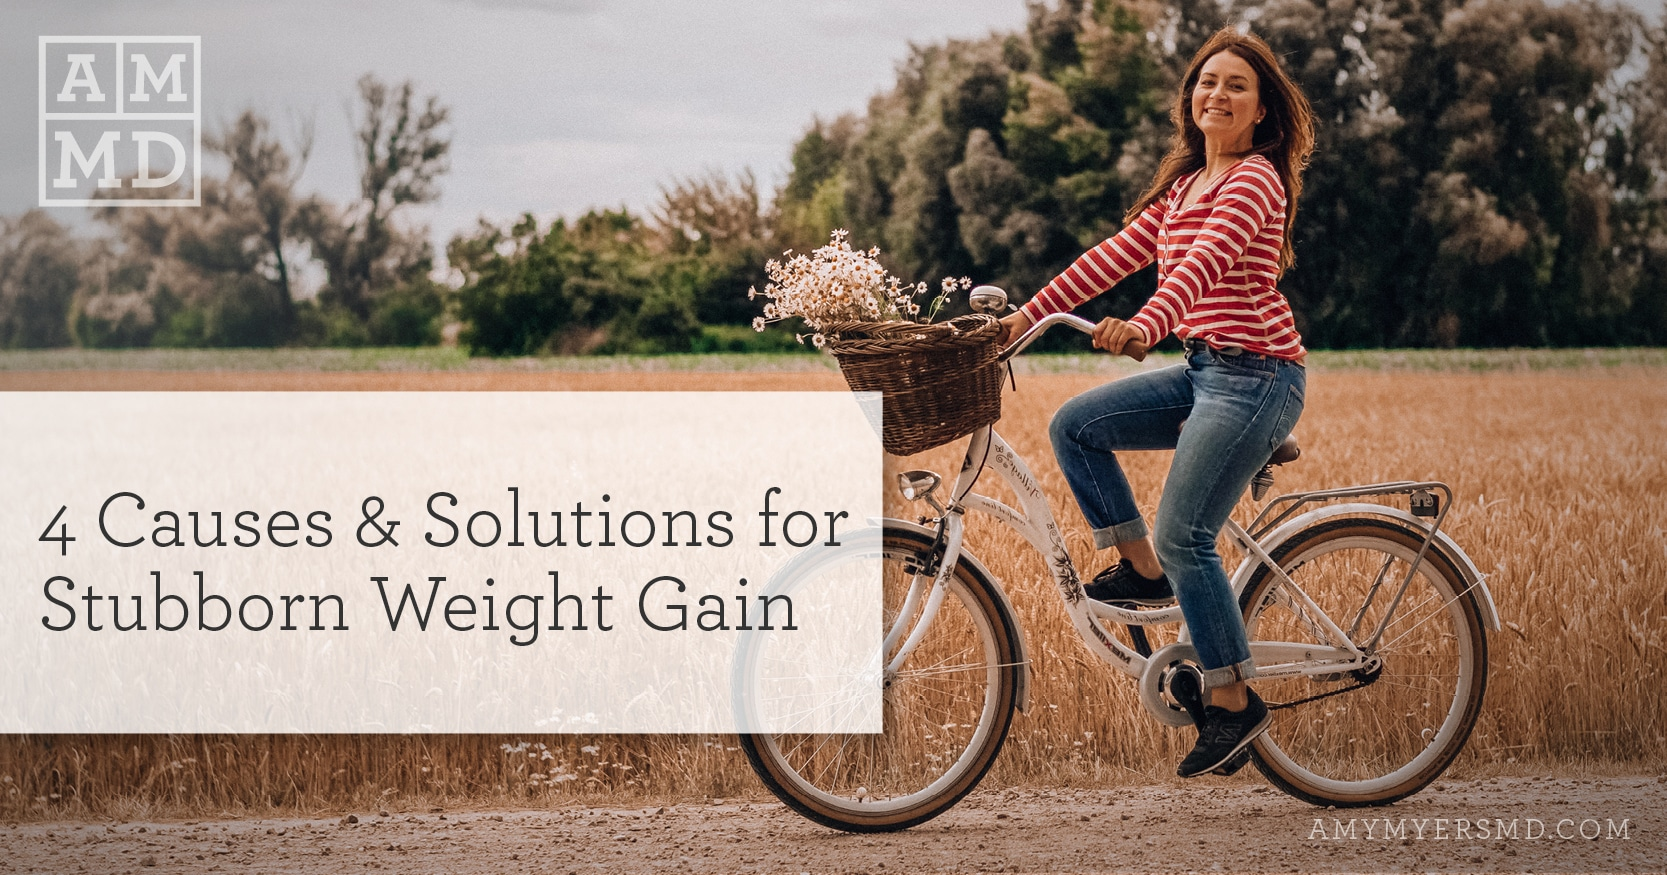 4 Causes & Solutions for Stubborn Weight Gain - A Woman Riding a Bike - Amy Myers MD